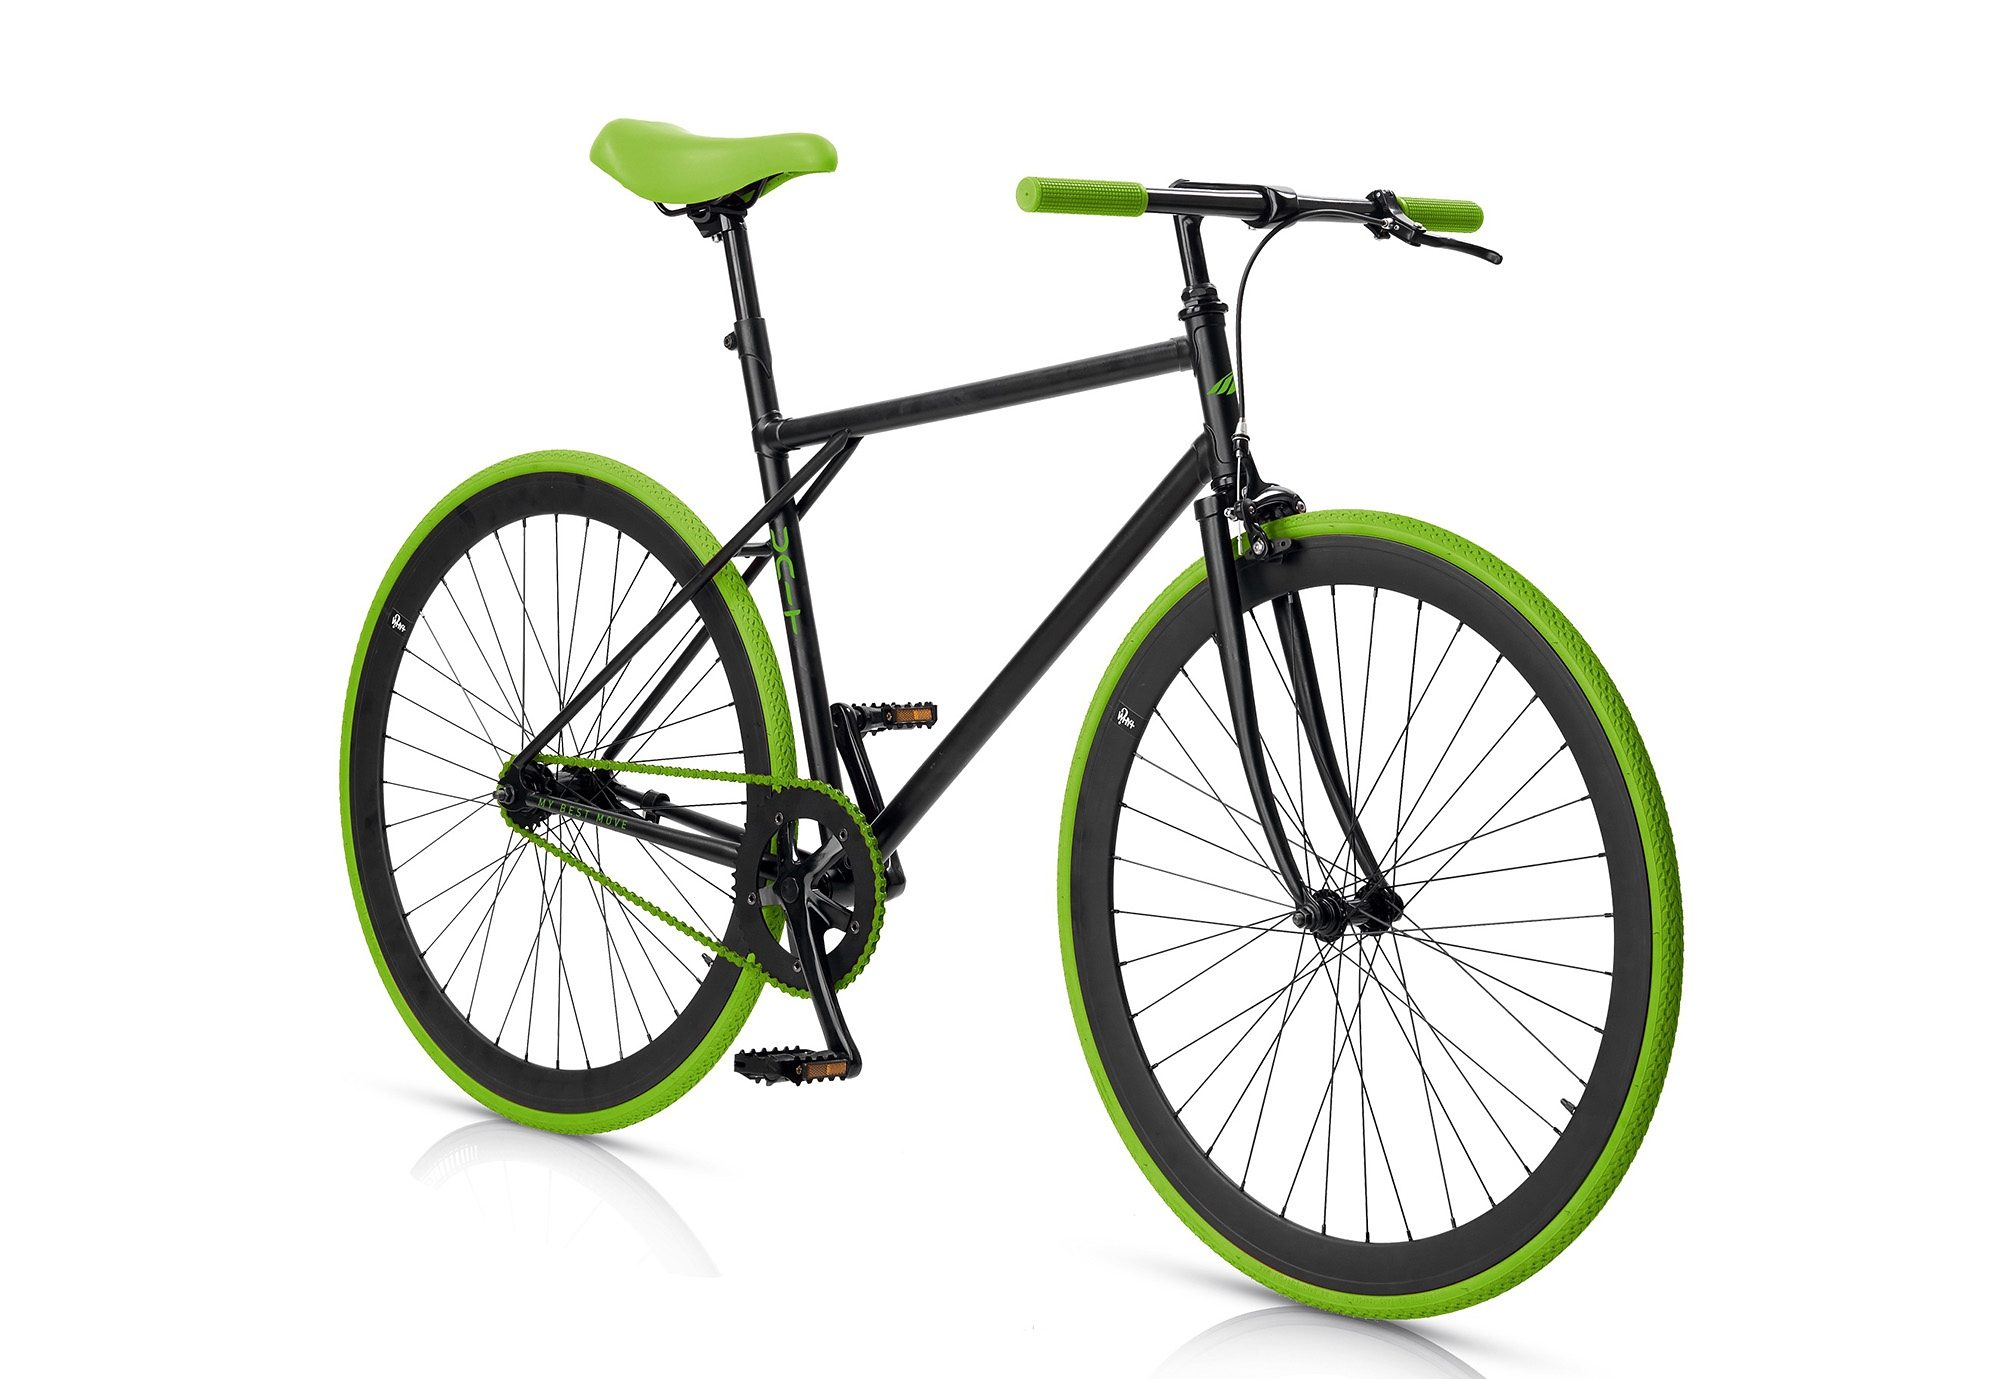 Fitnessbike, 28 Zoll, 1 Gang,Freilauf oder Fixed Gear, »Unit 581 Coaster Brake 1 S«, MBM